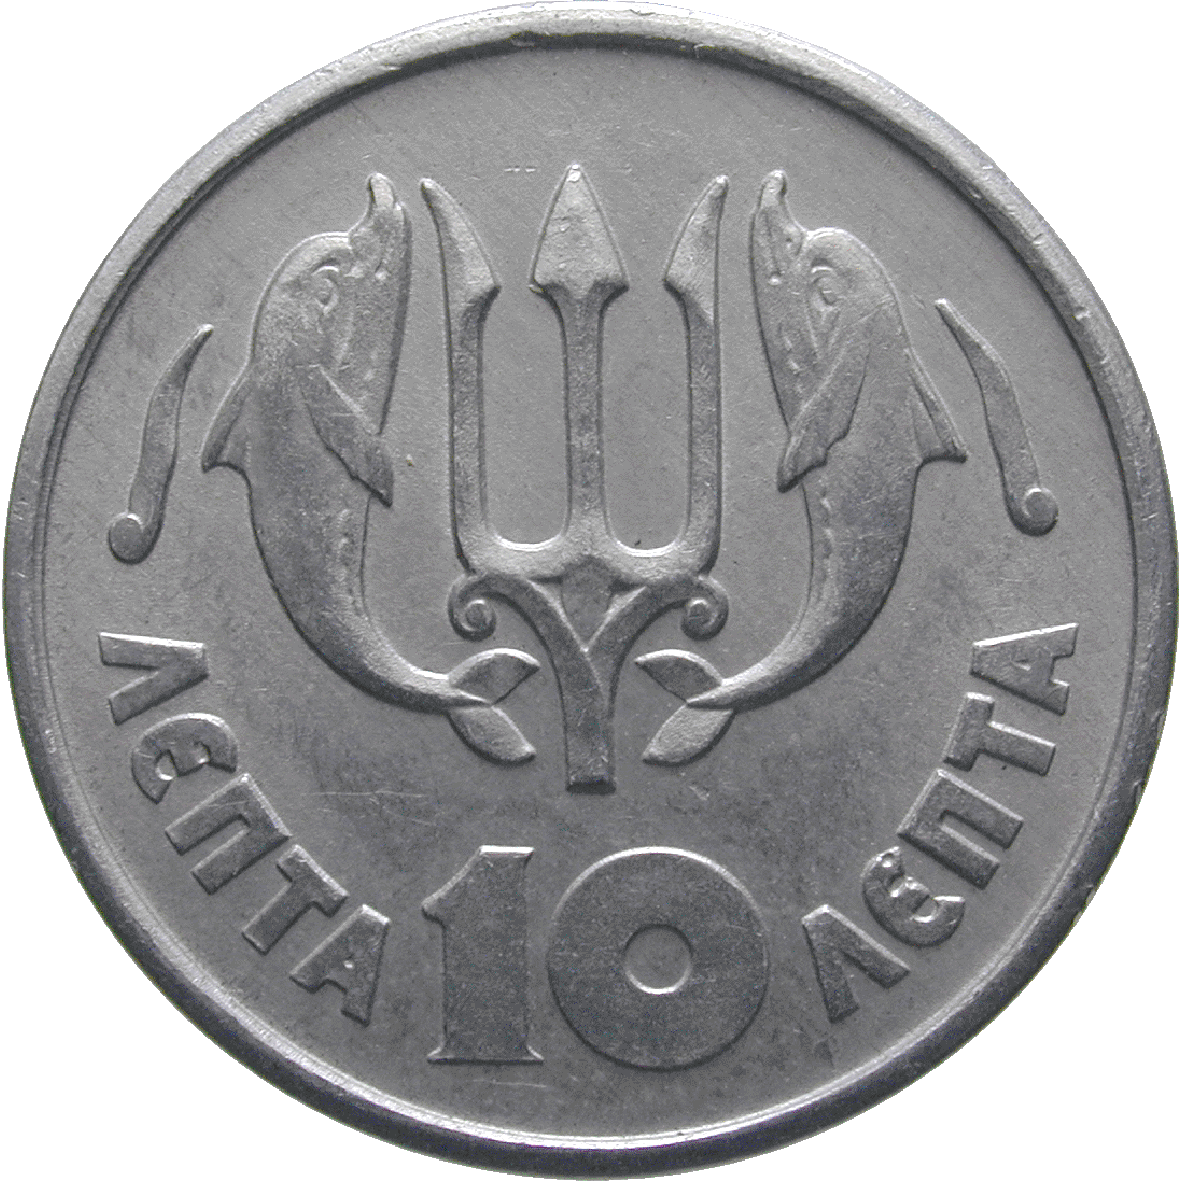 Republic of Greece, 10 Lepta 1973 (reverse)